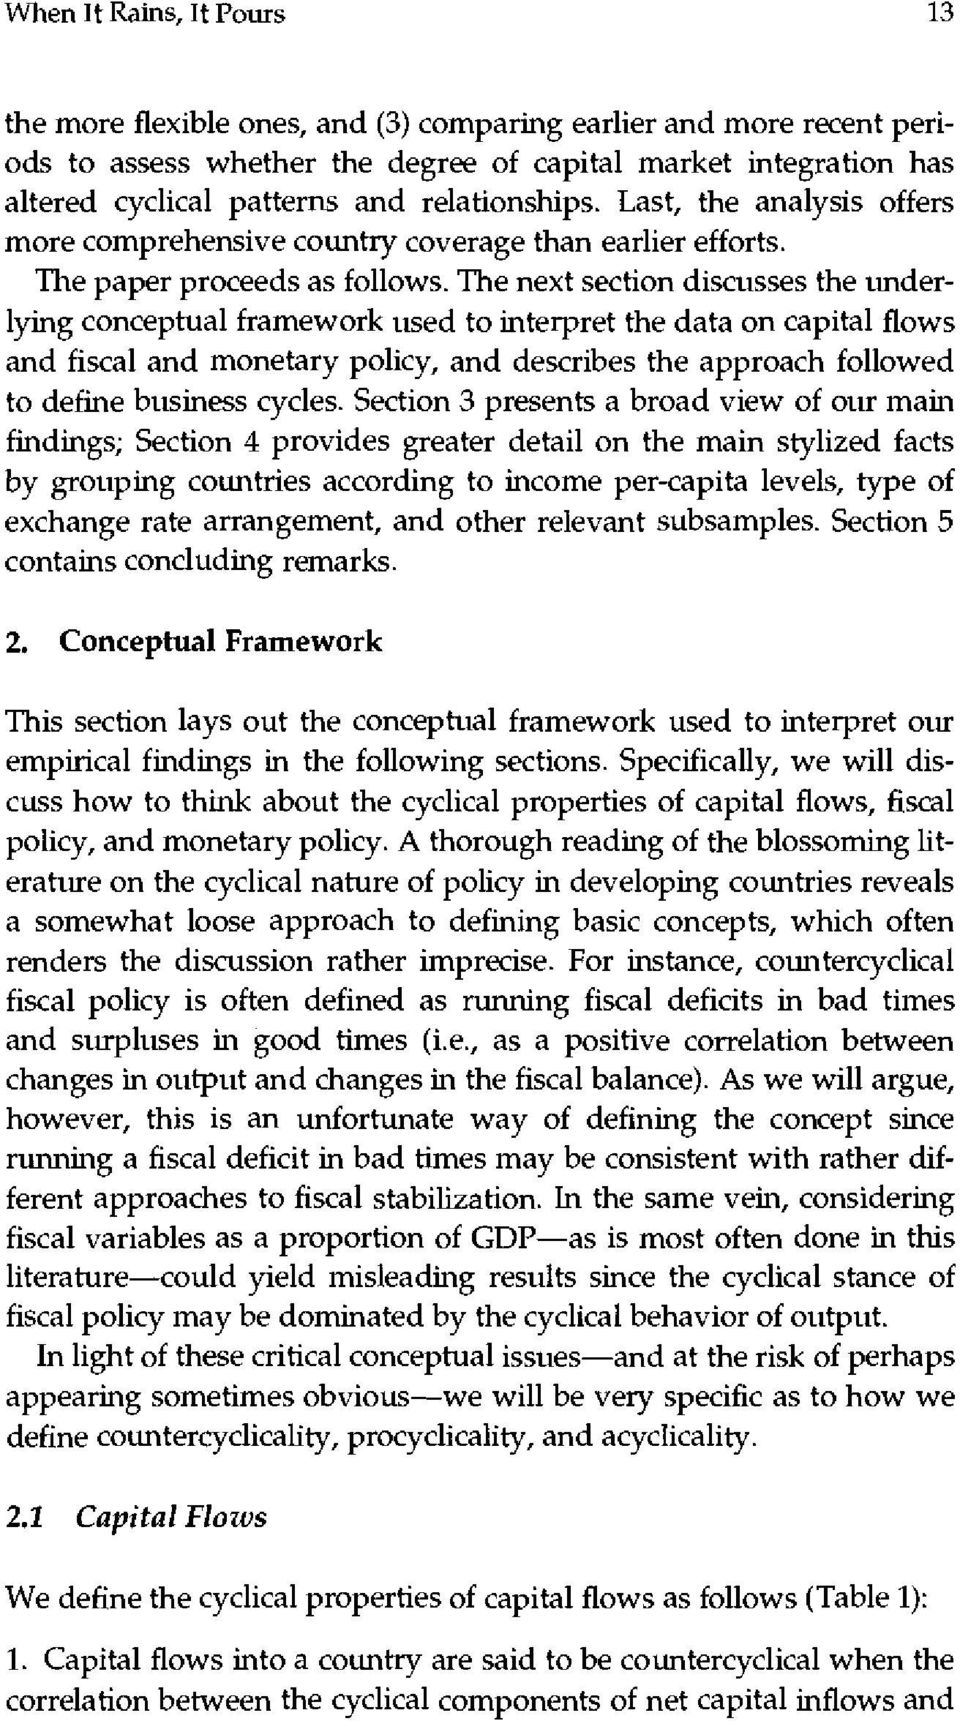 The next section discusses the underlying conceptual framework used to interpret the data on capital flows and fiscal and monetary policy, and describes the approach followed to define business